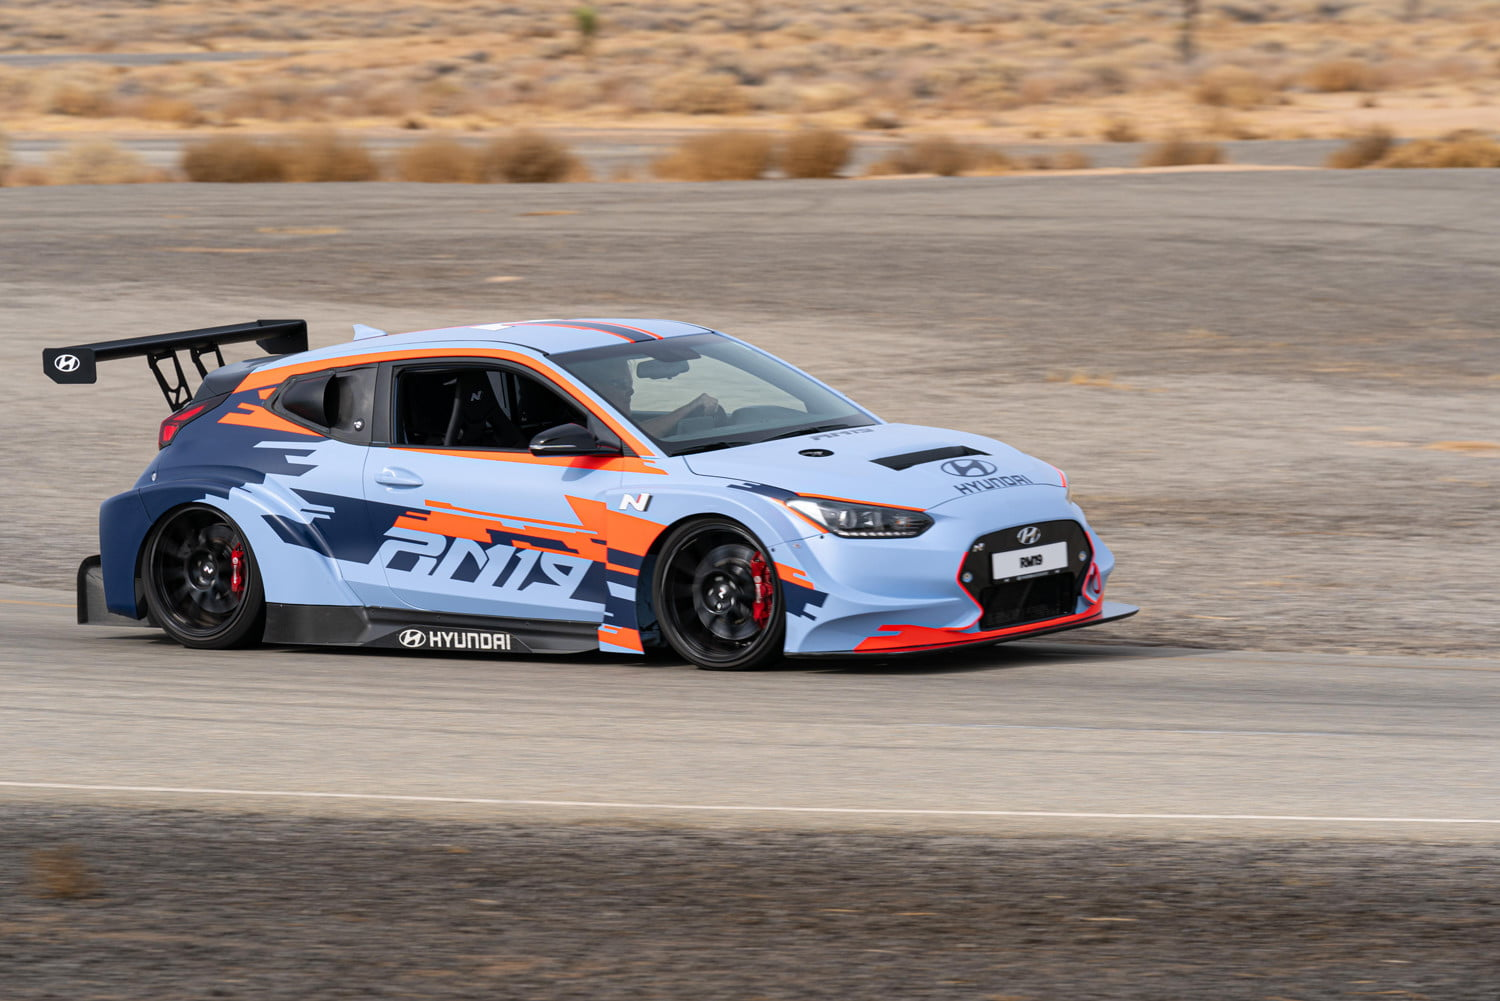 mid engined hyundai rm19 hot hatch unveiled at los angeles auto show 2